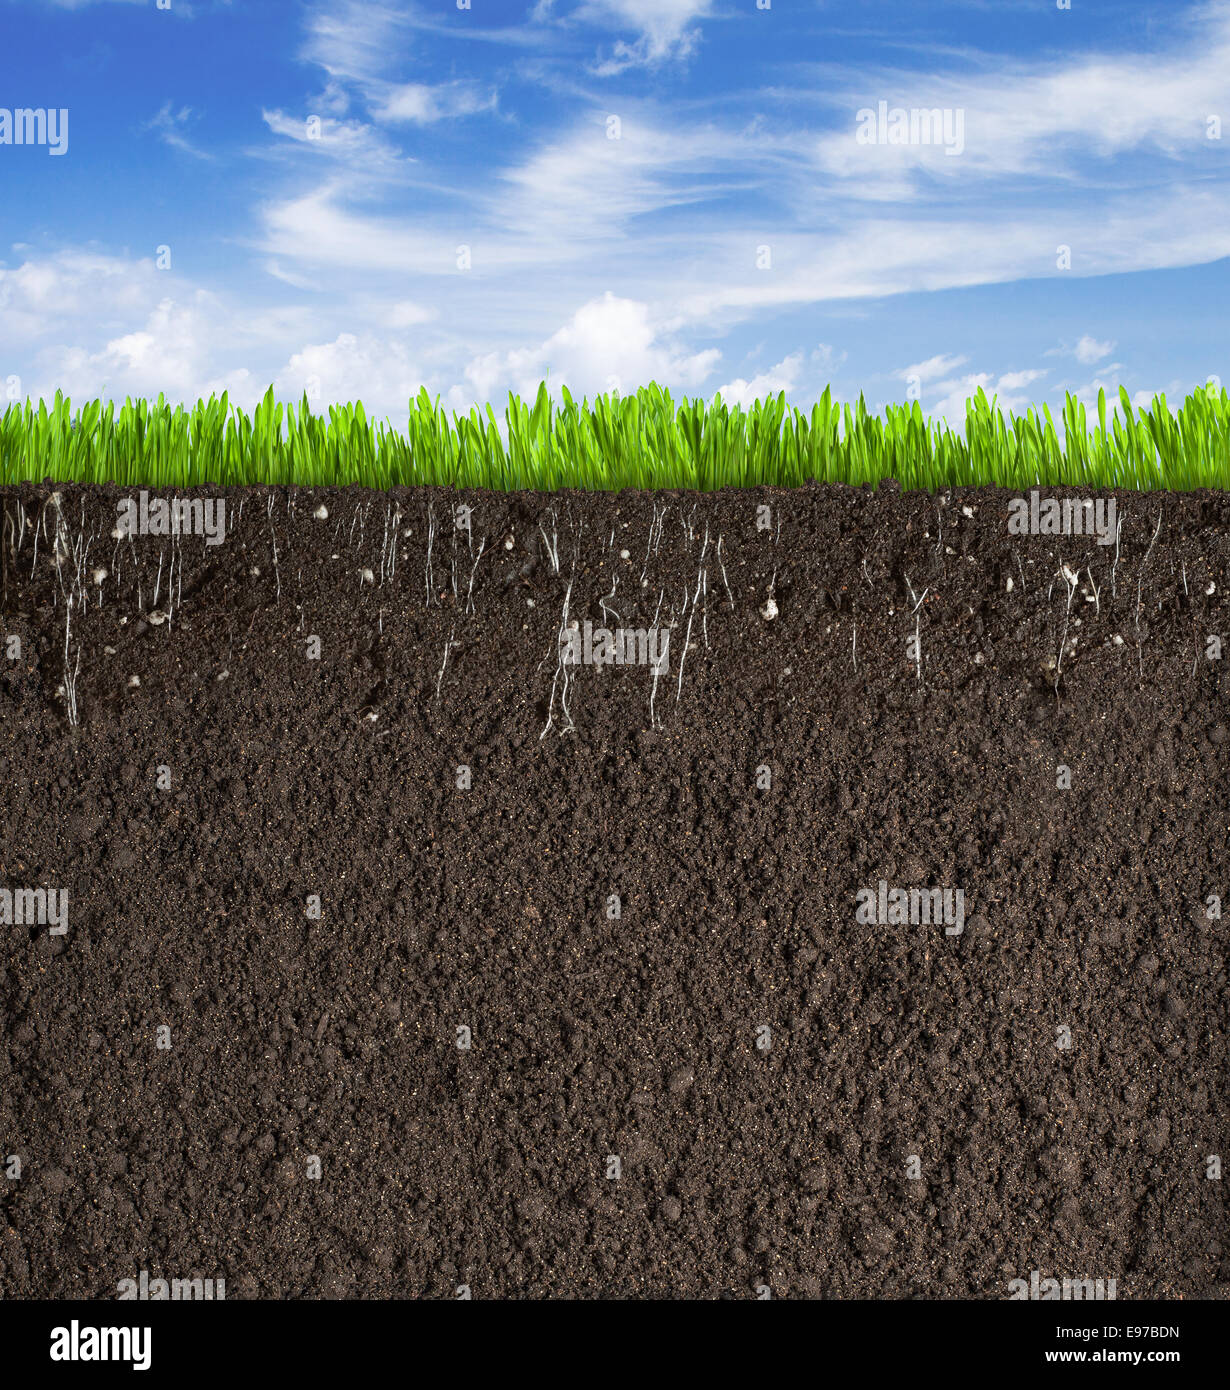 Soil or dirt section with grass under sky as background for Dirt and soil